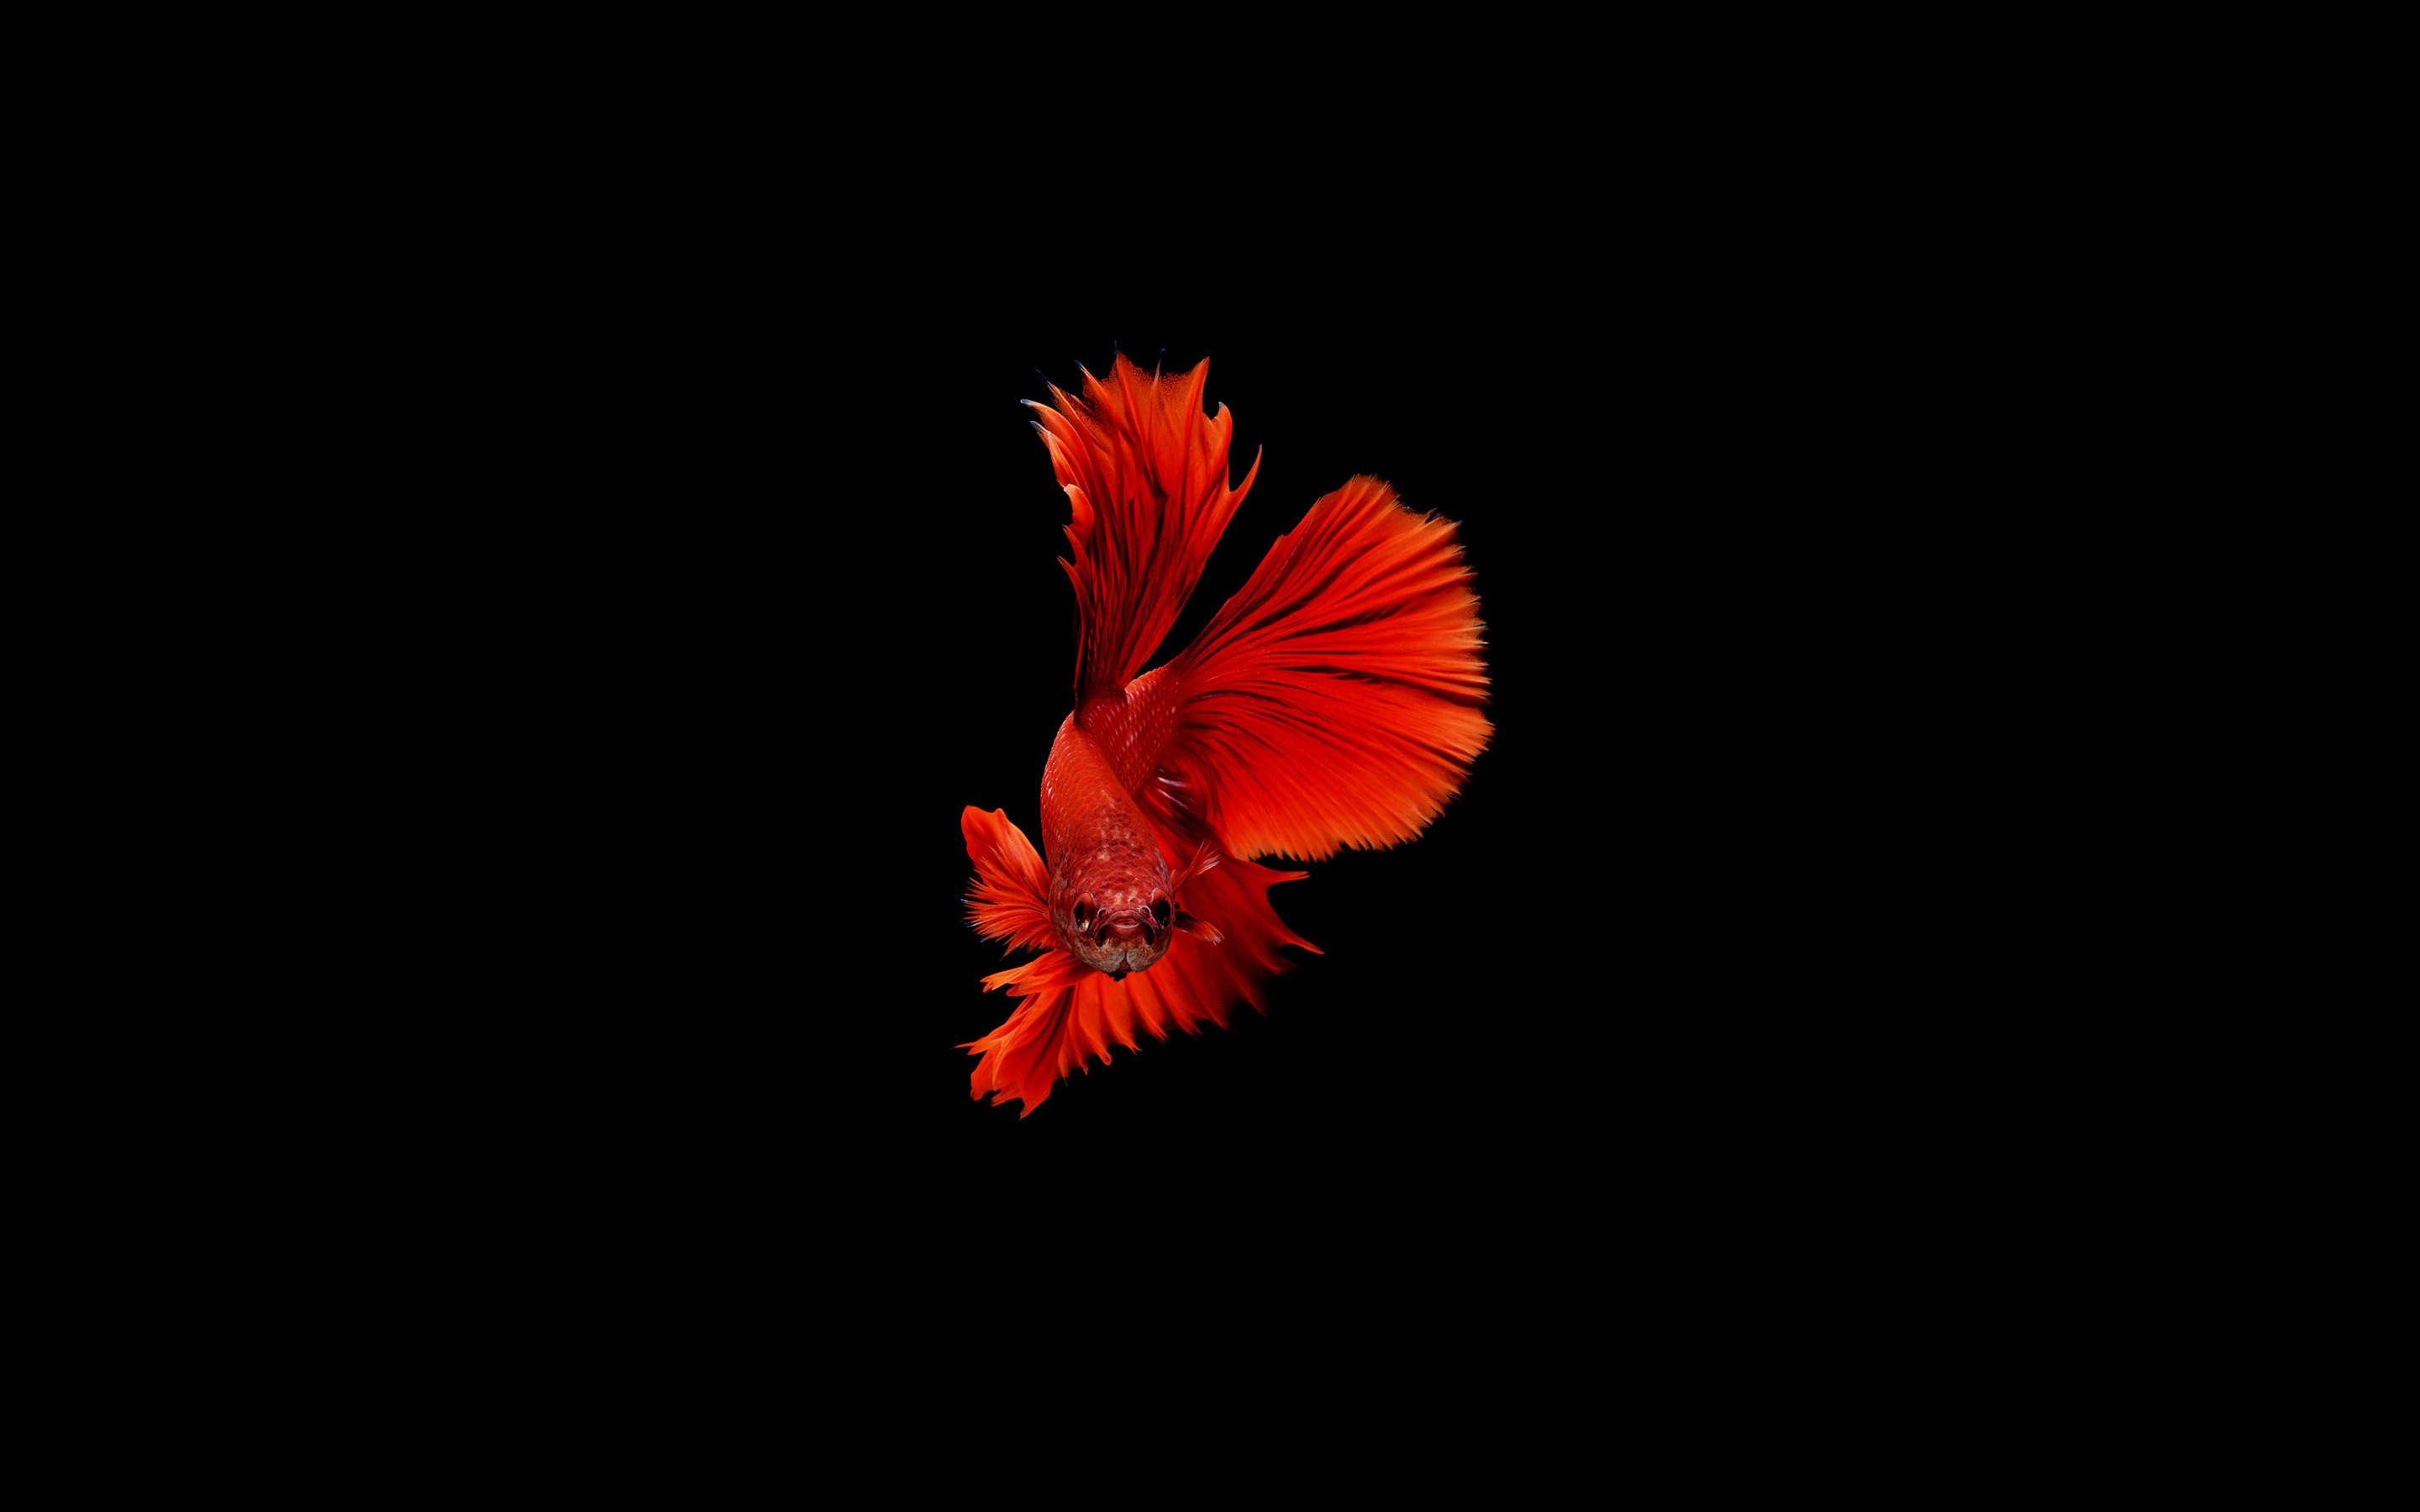 2880x1800 Betta Fish Macbook Pro Retina HD 4k Wallpapers Images